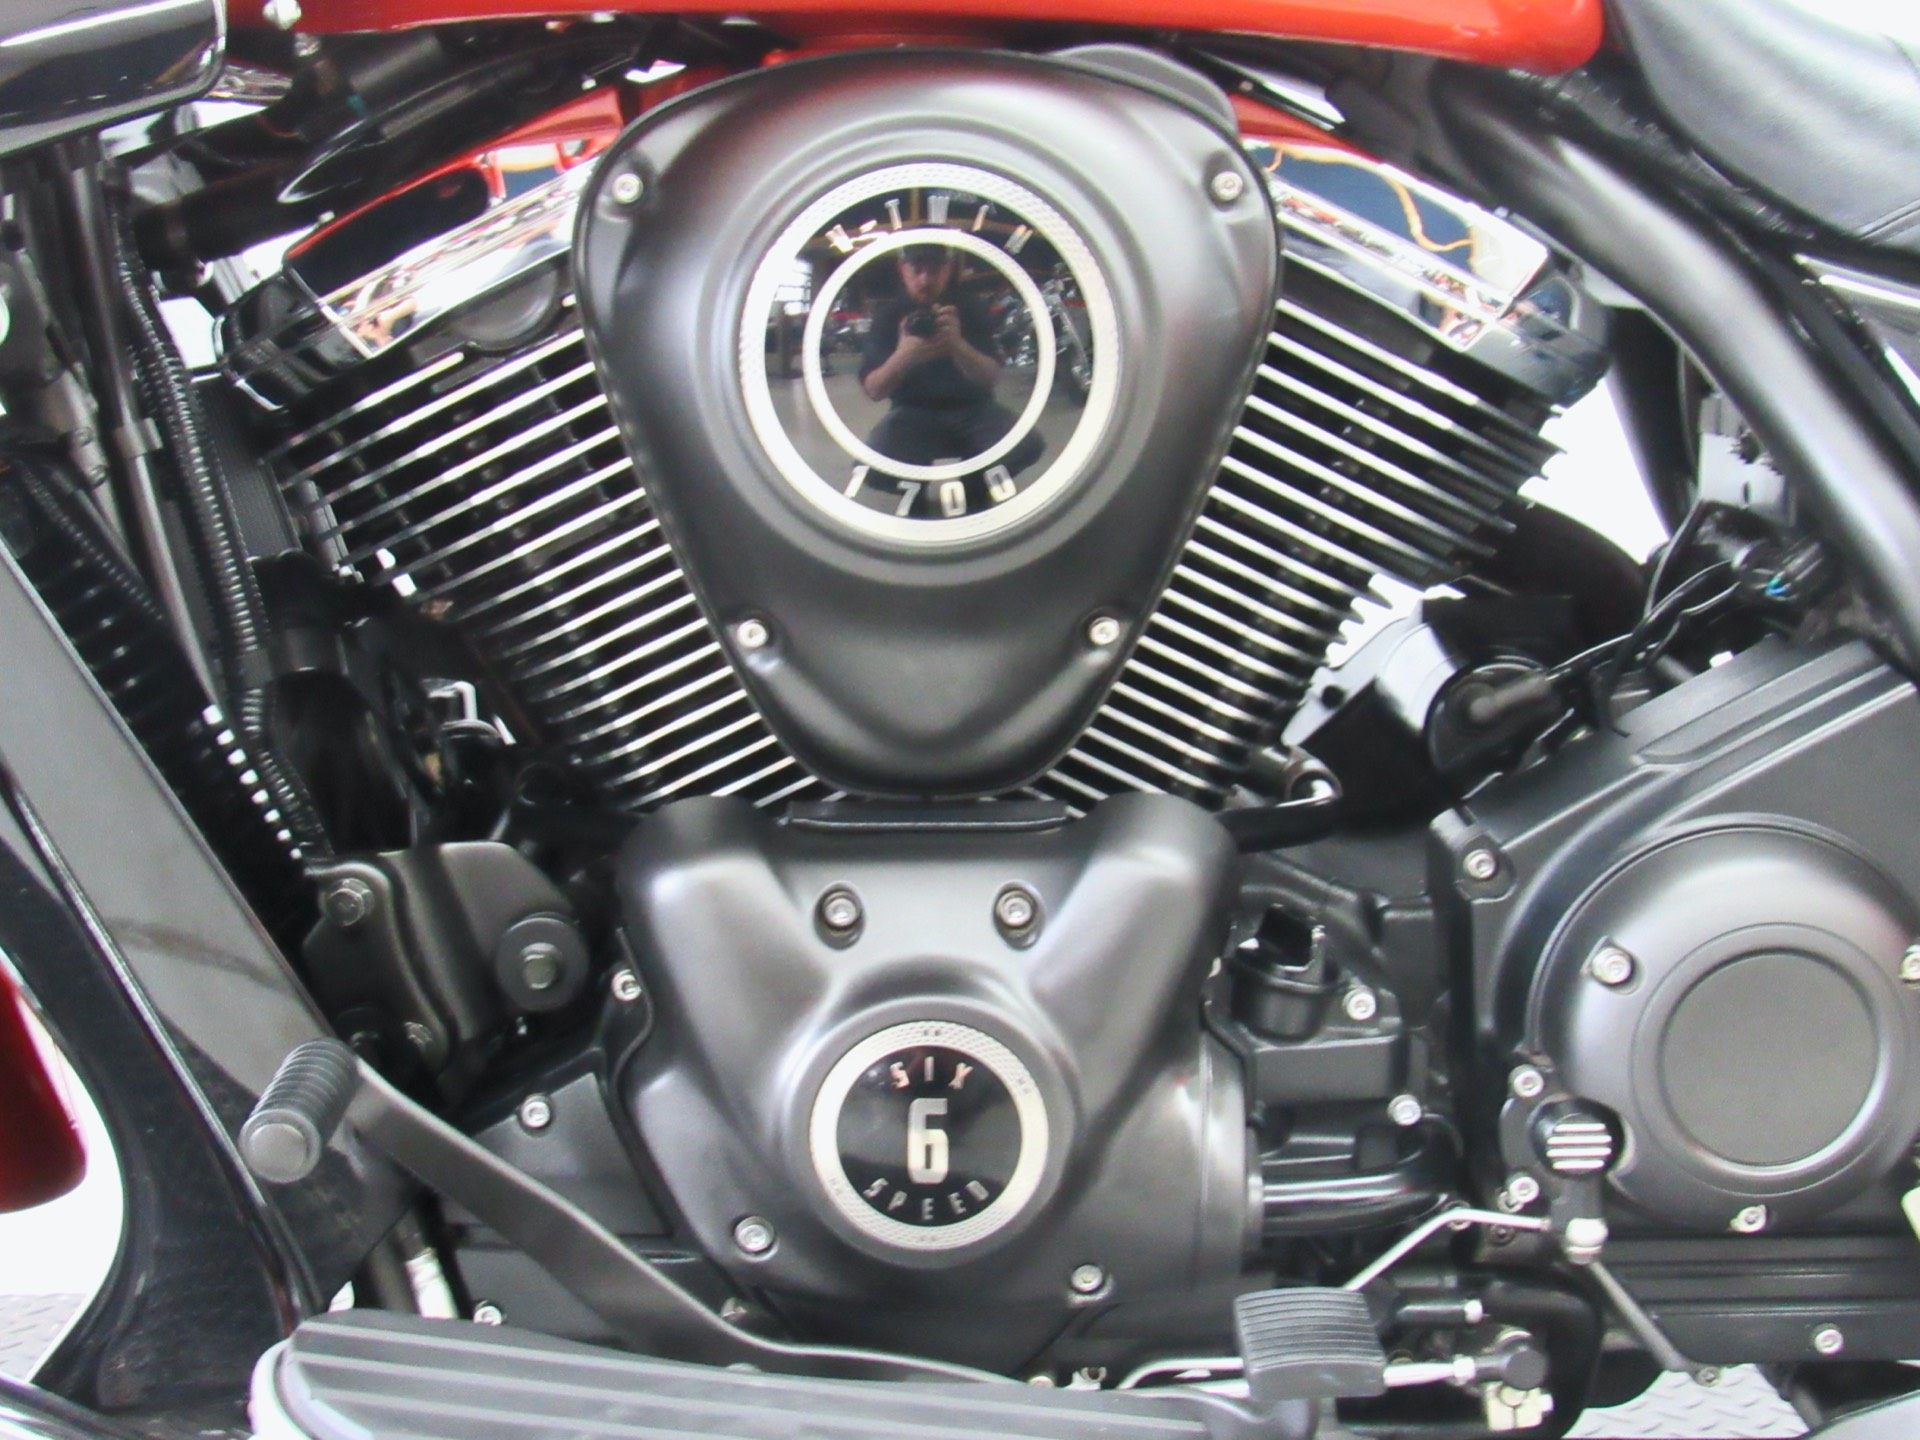 2014 Kawasaki Vulcan® 1700 Vaquero® ABS SE in Fredericksburg, Virginia - Photo 19